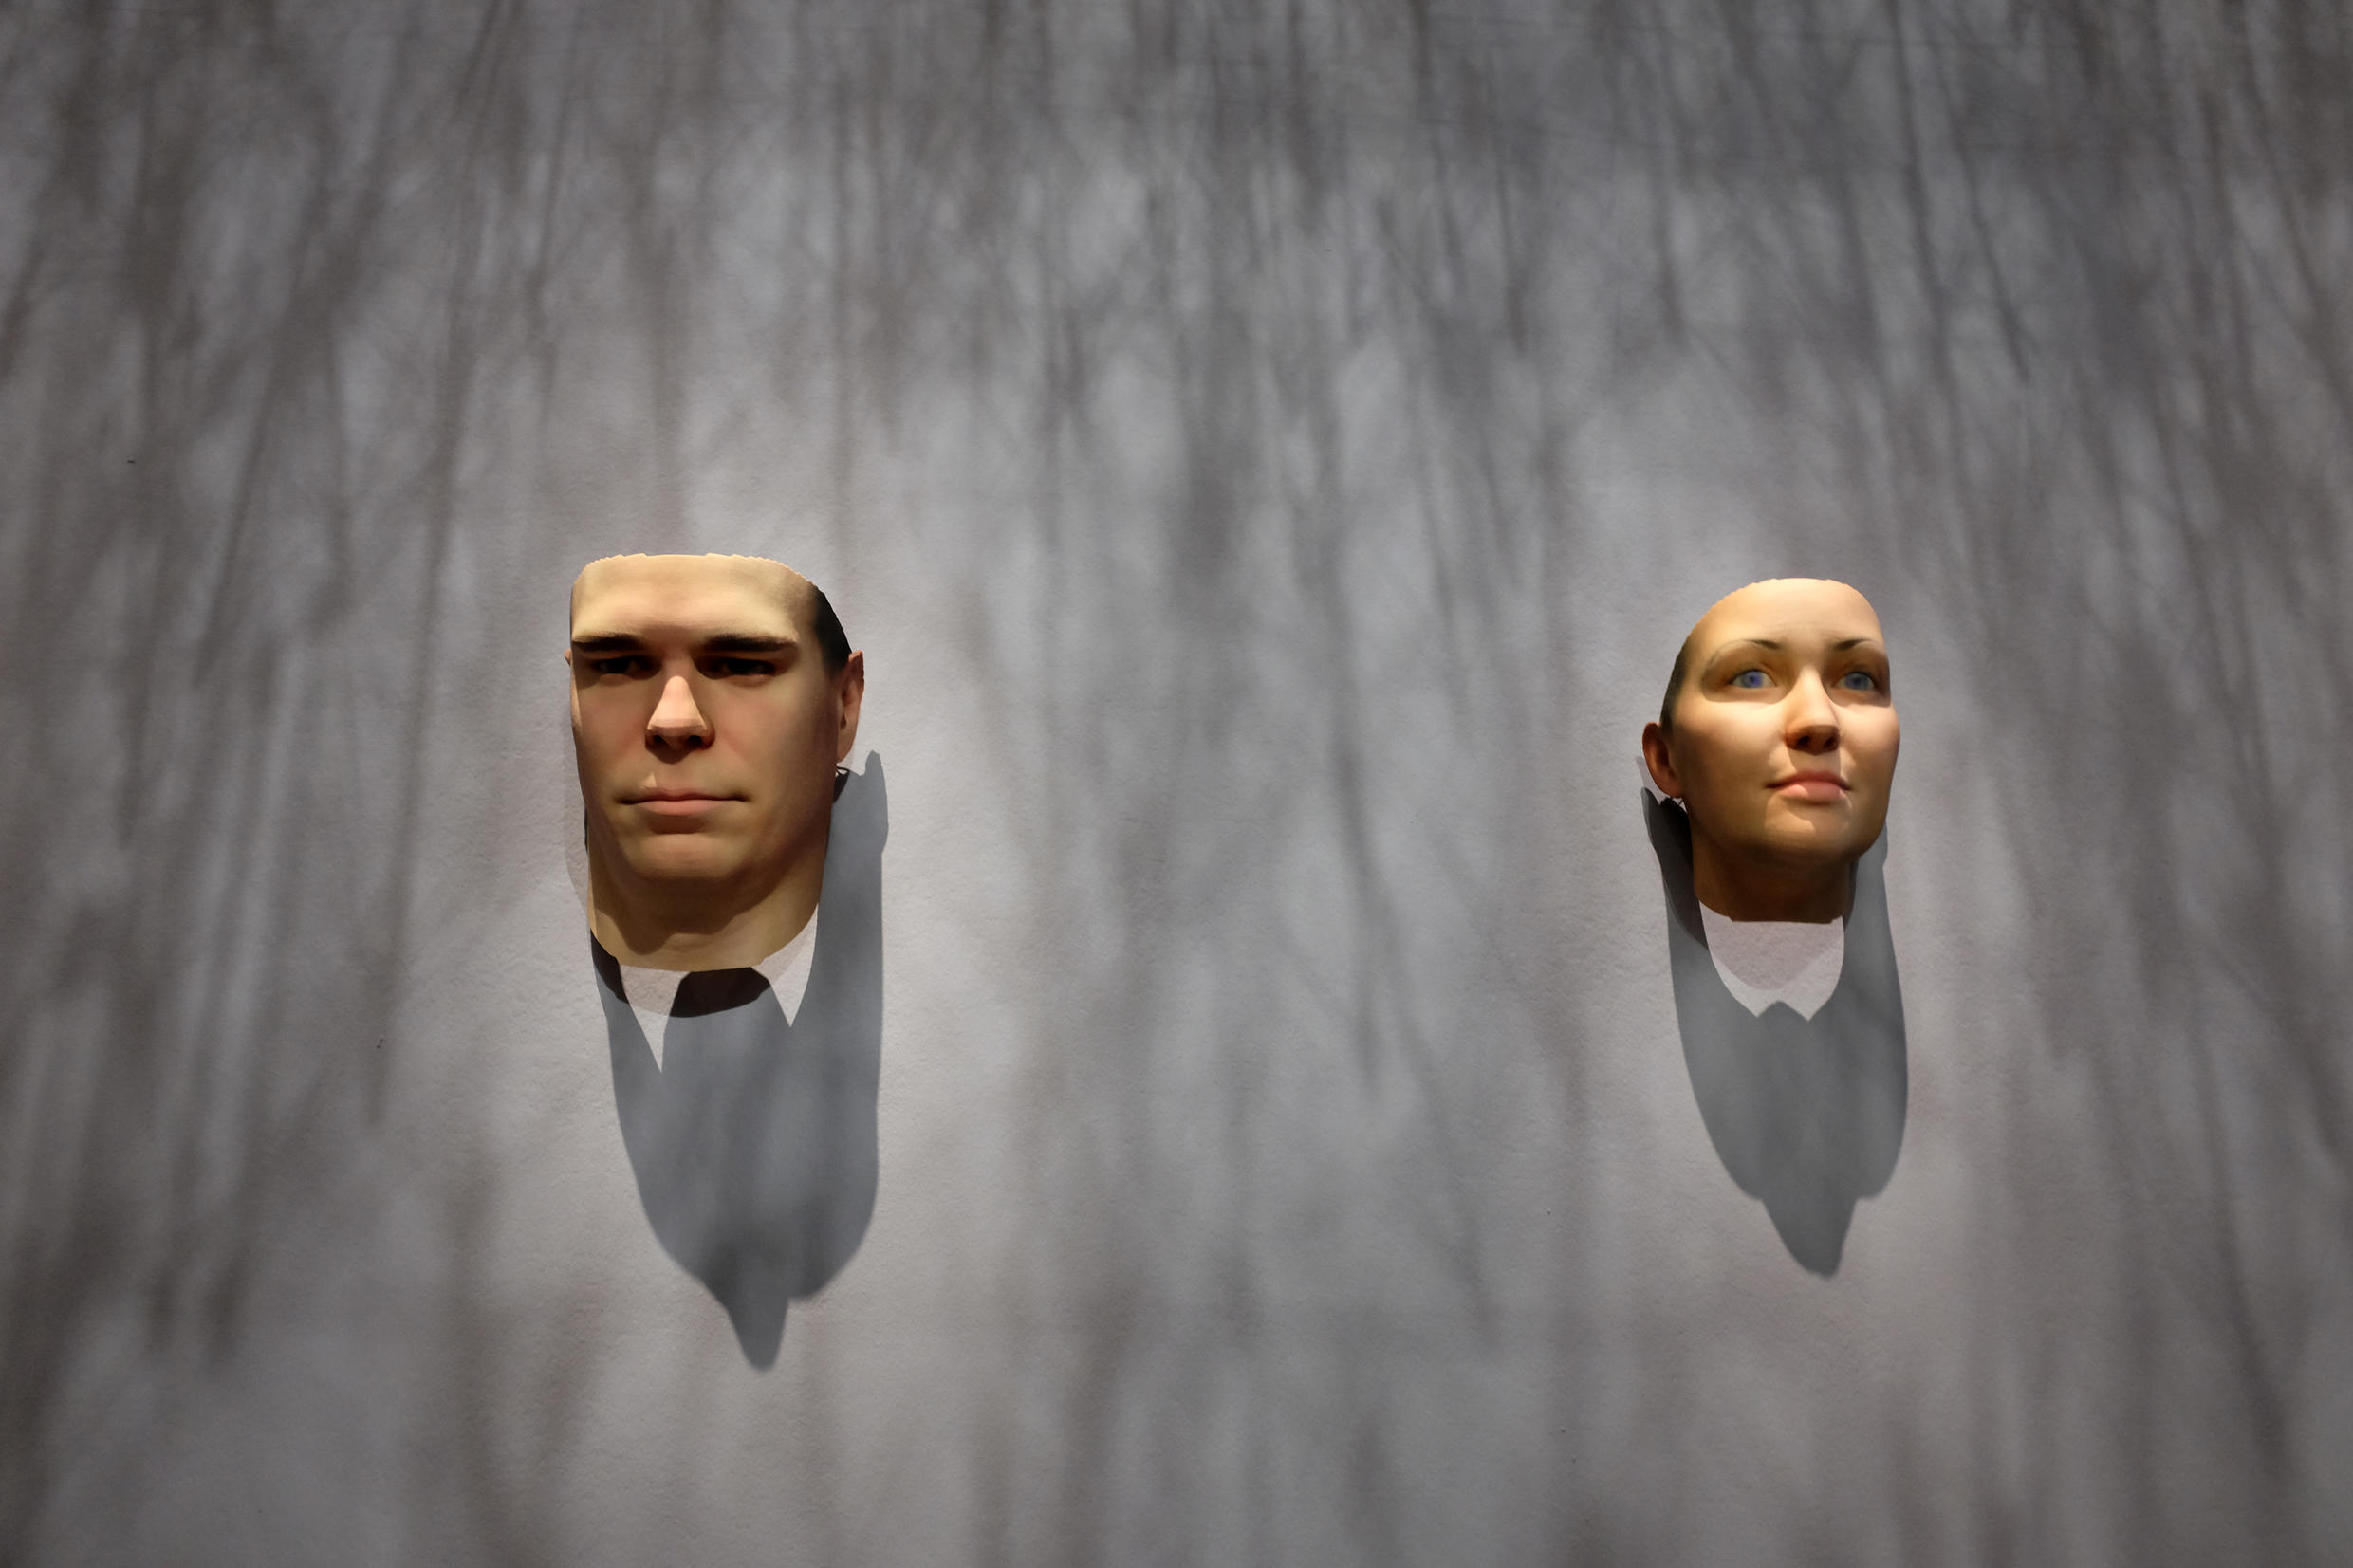 Vue de l'œuvre de Heather Dewey-Hagborg : « Stranger Visions, portraits and samples from New York, 2012 » (detail). Impression 3D de 7 visages, 2016.